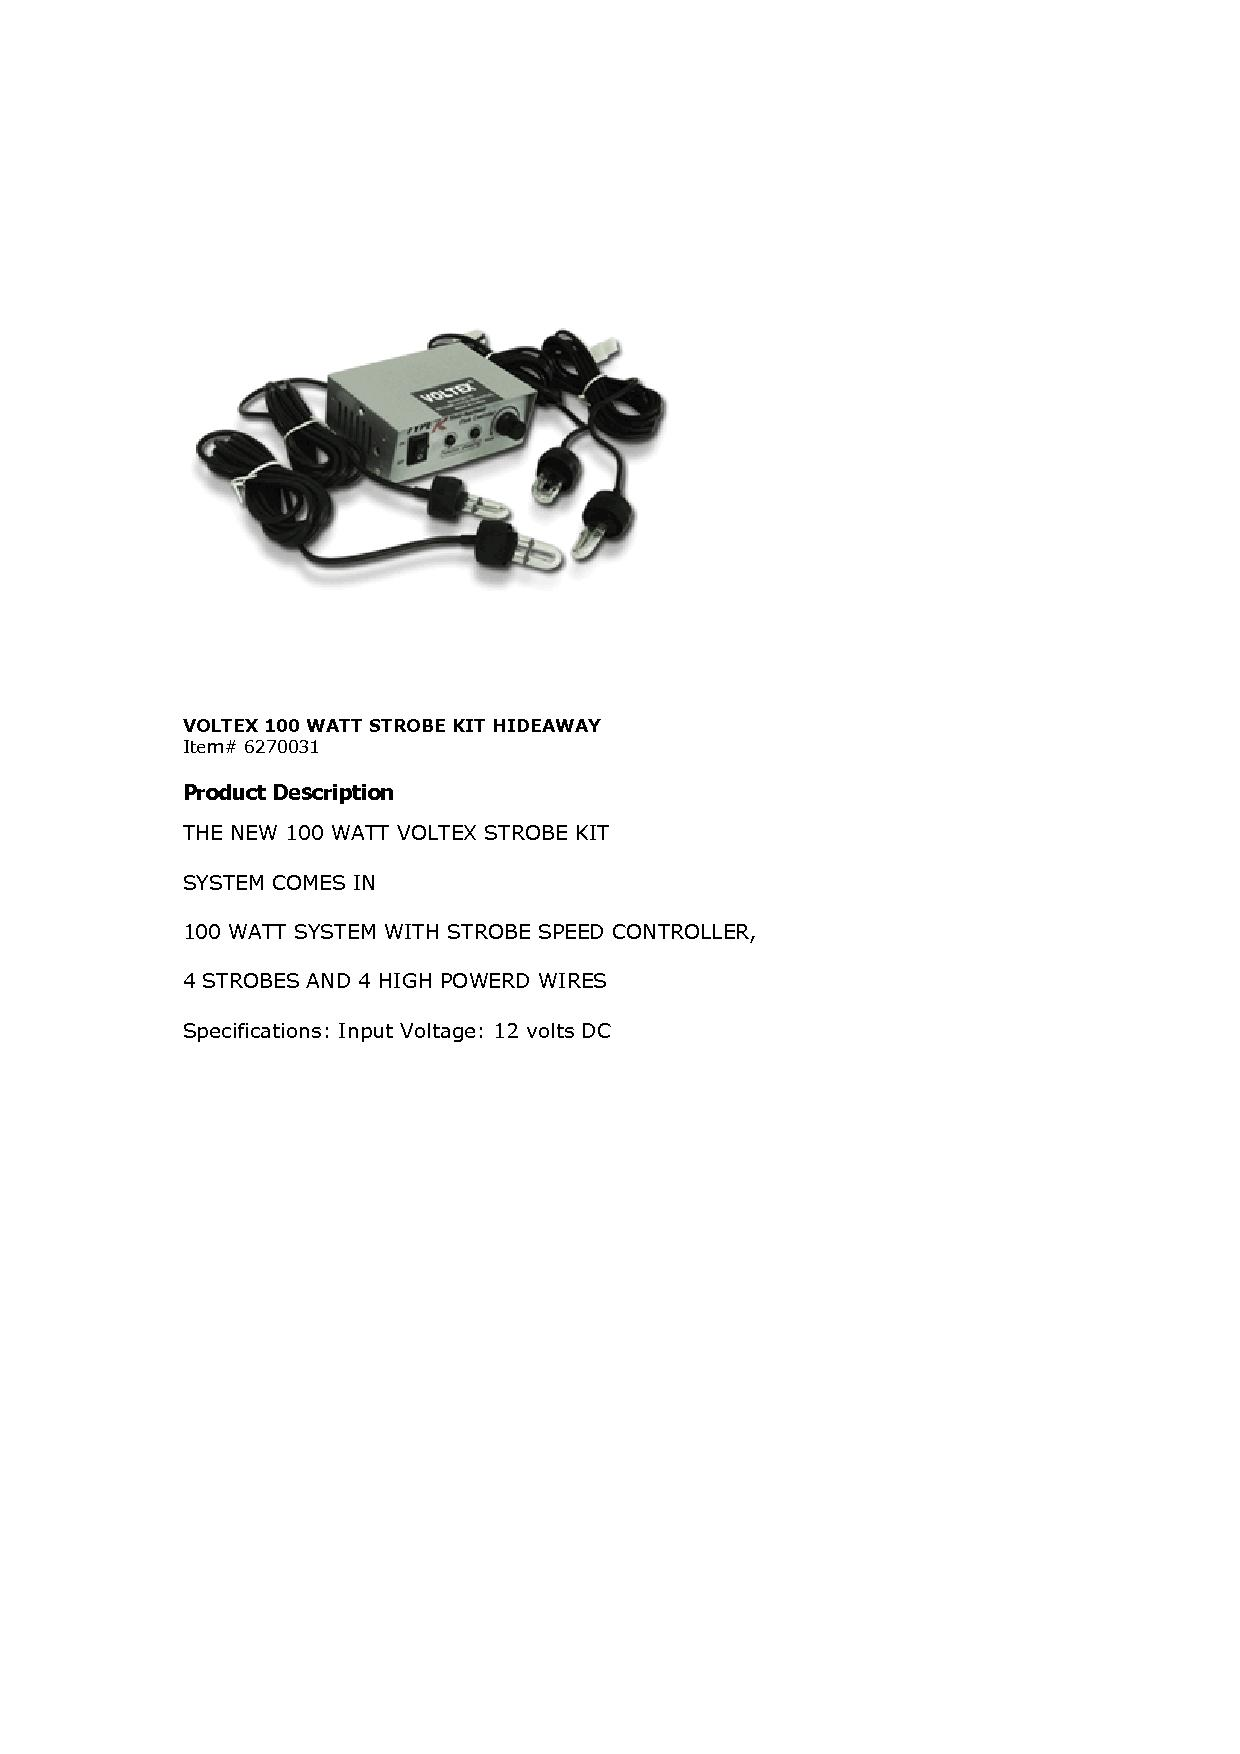 Contact your distributor about our strobe lights.